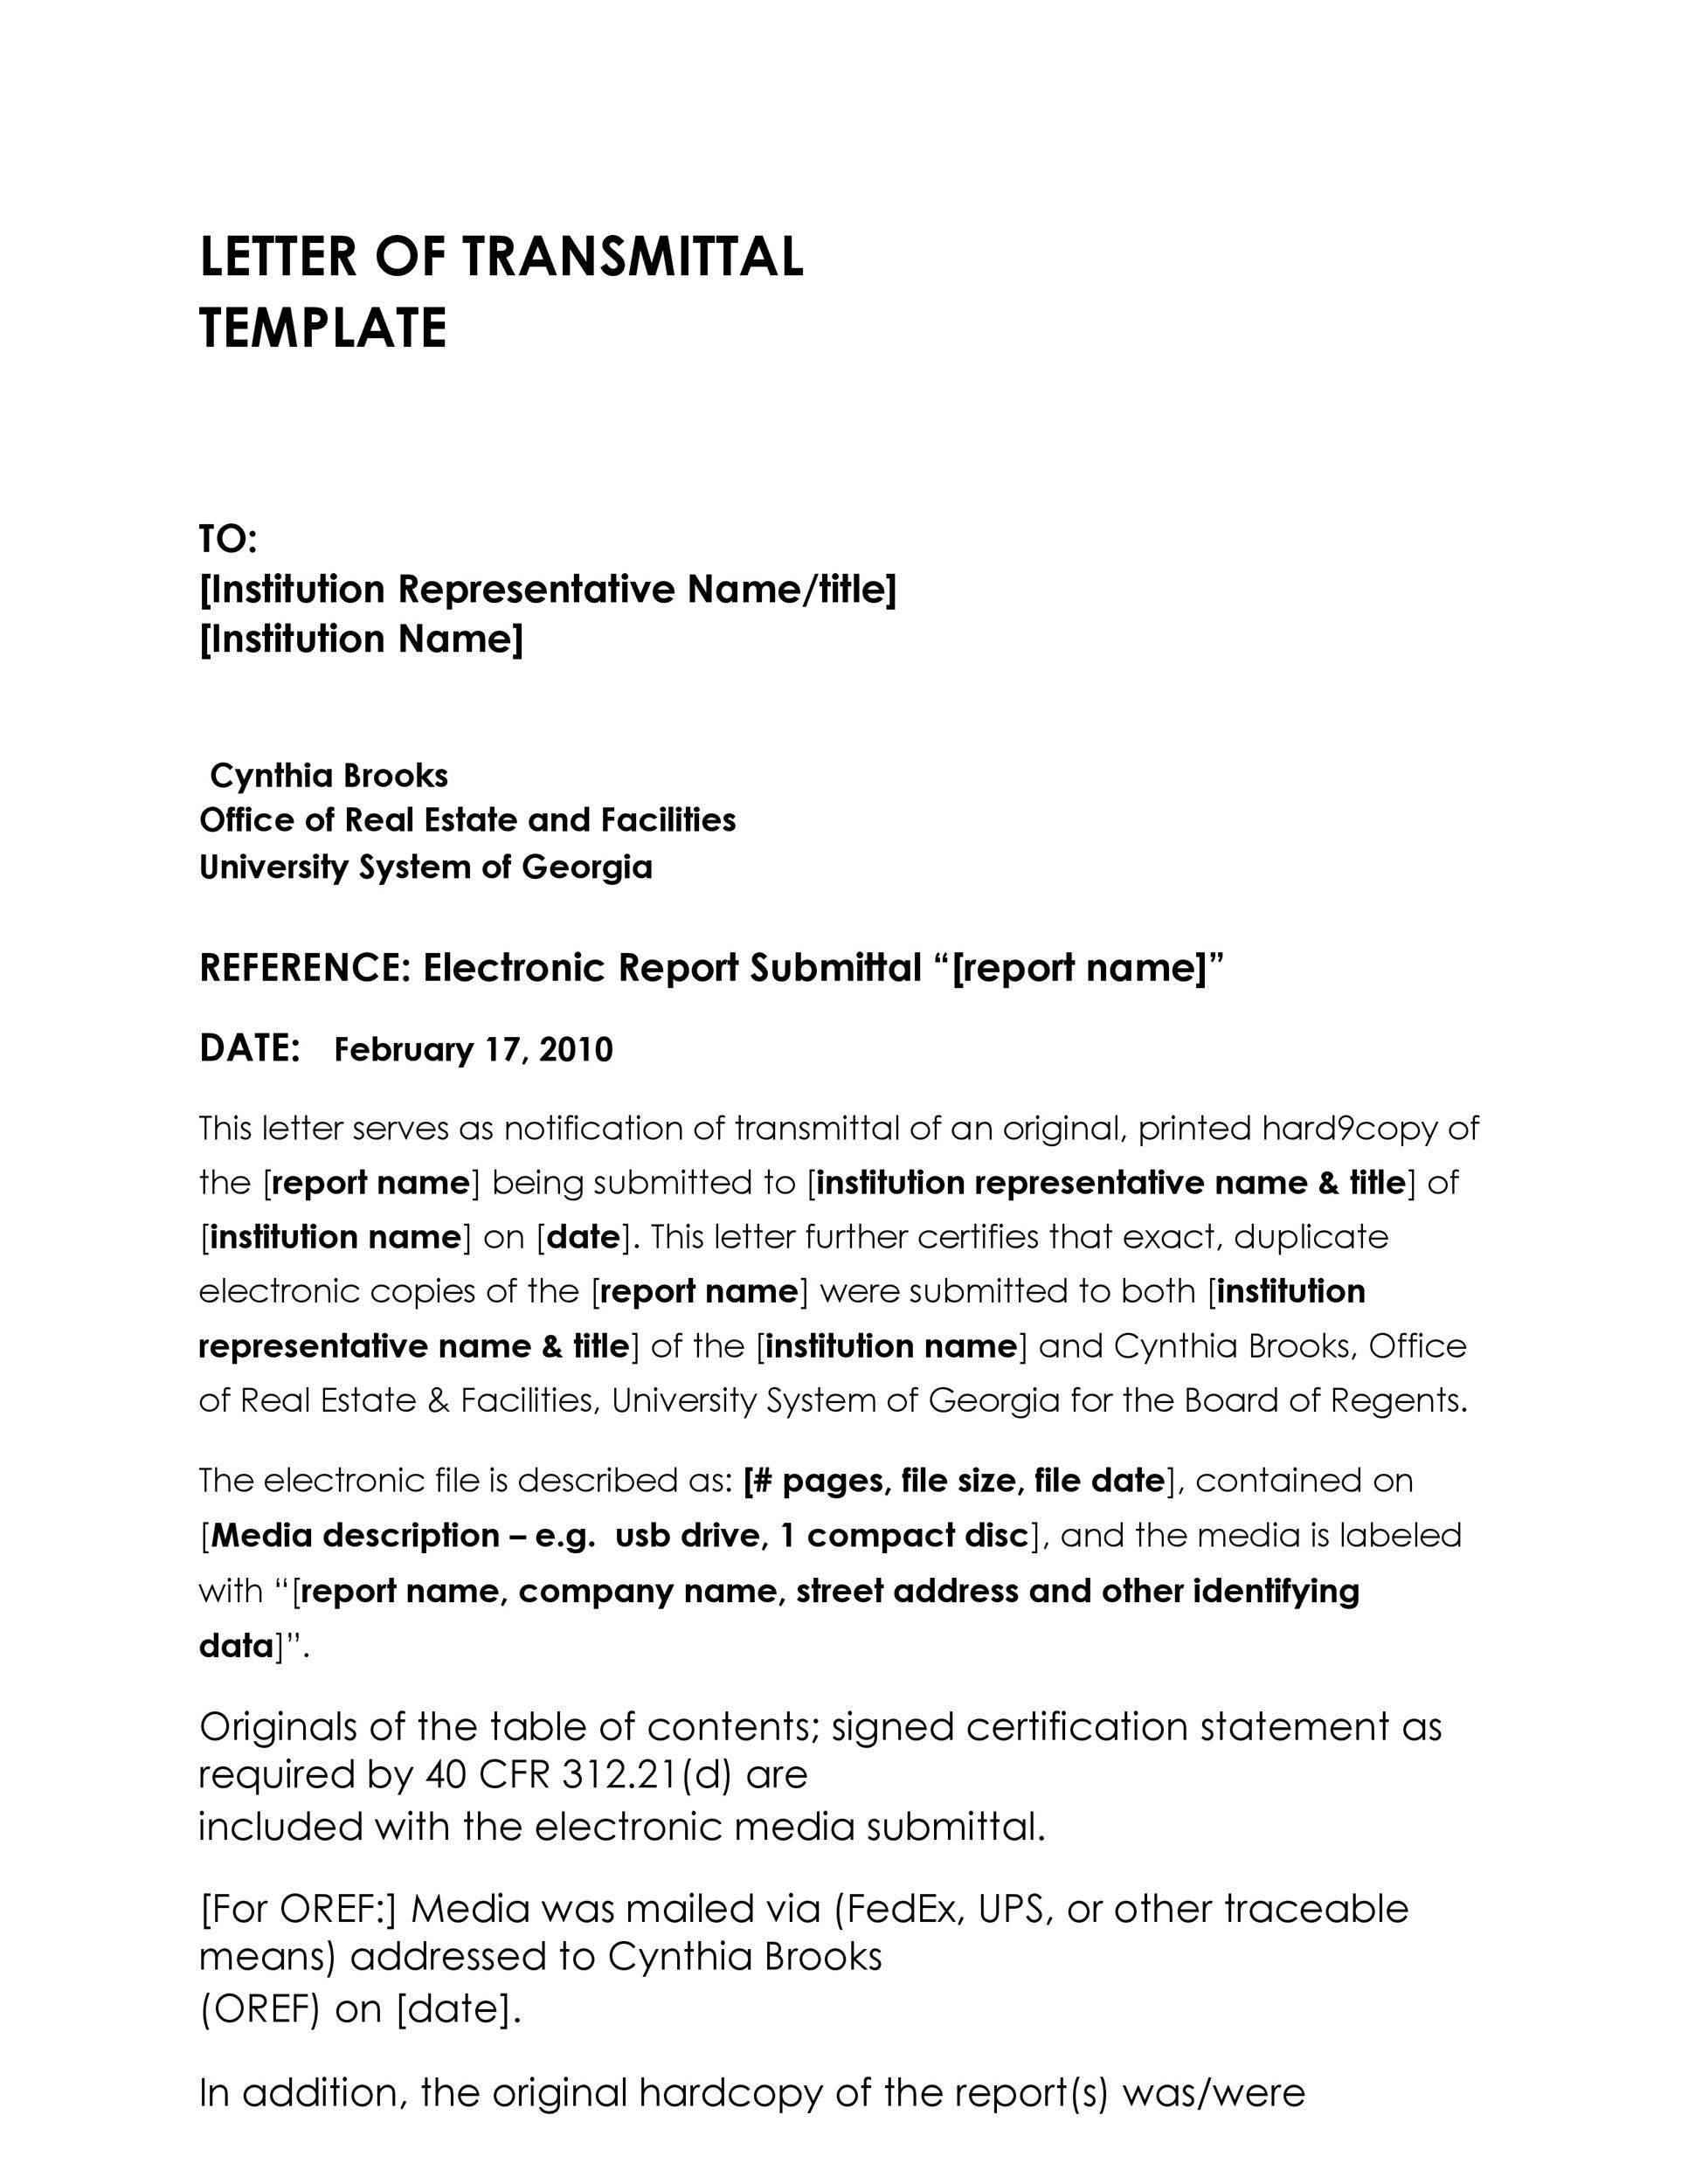 Free letter of transmittal template 09